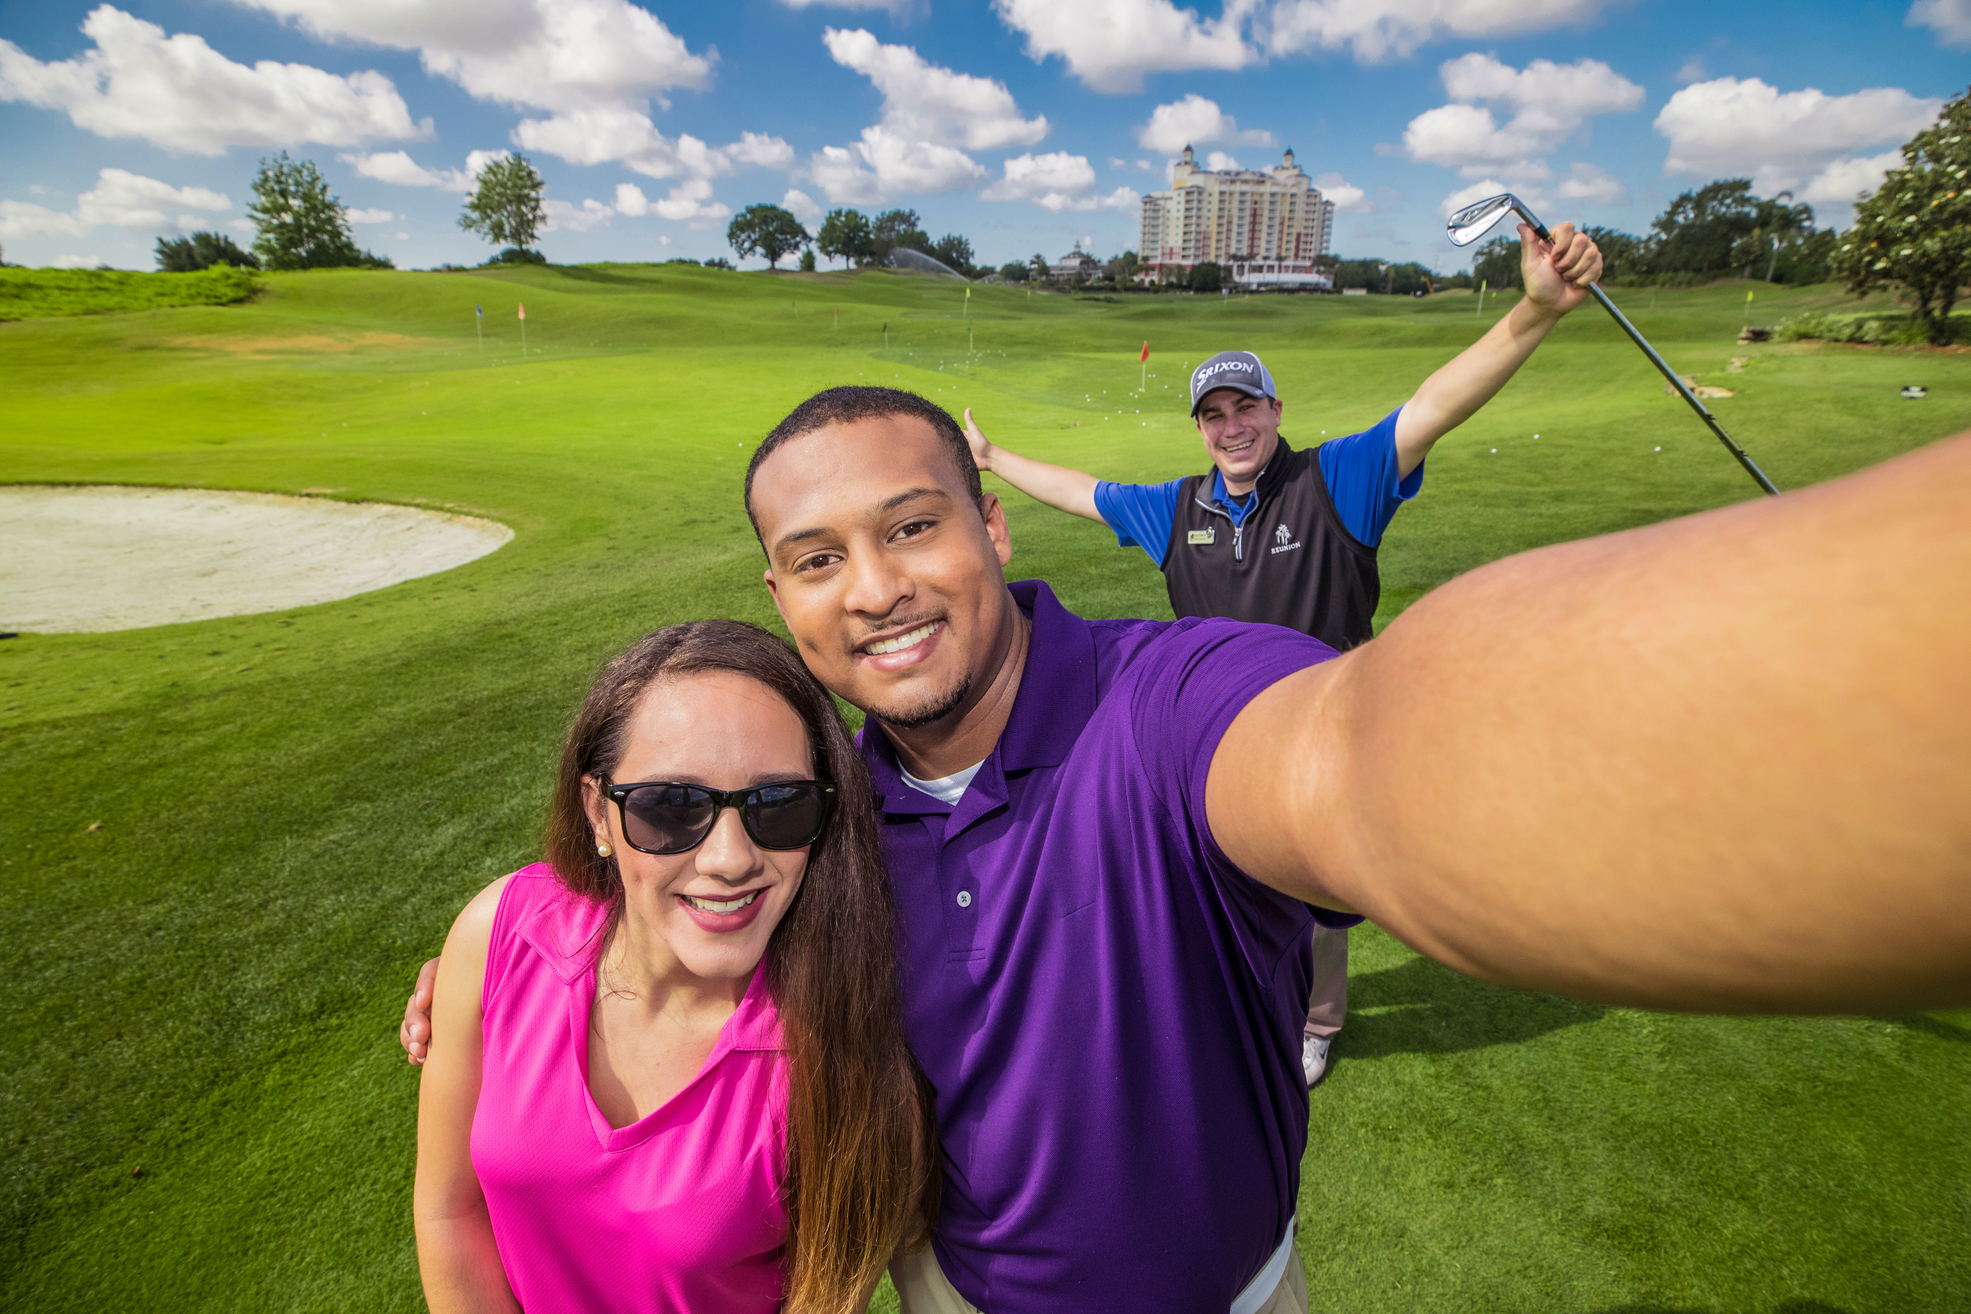 A couple takes a selfie on the golf course